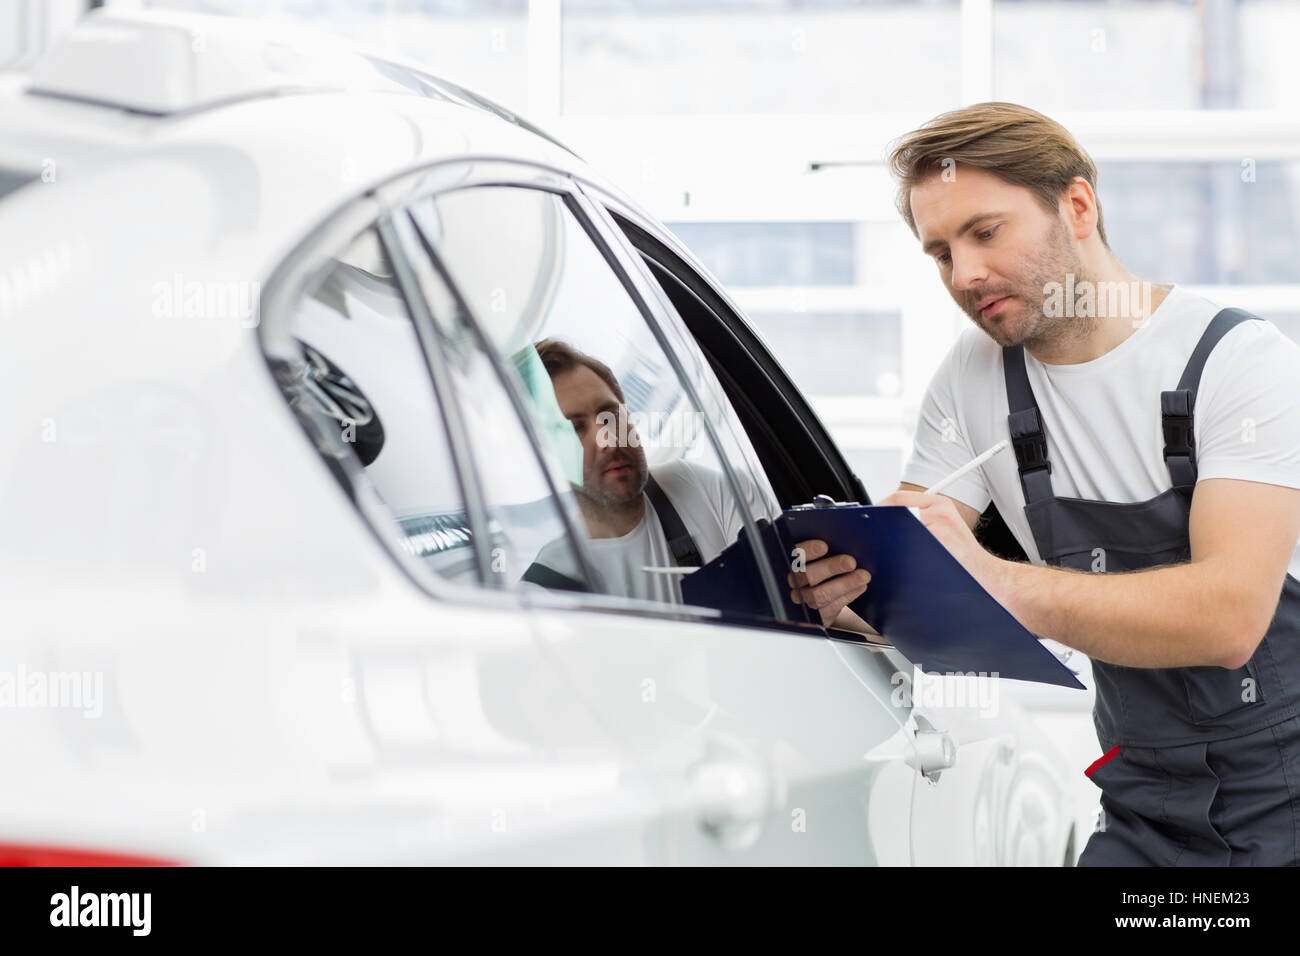 Automobile mechanic writing on clipboard while examining car in repair shop - Stock Image